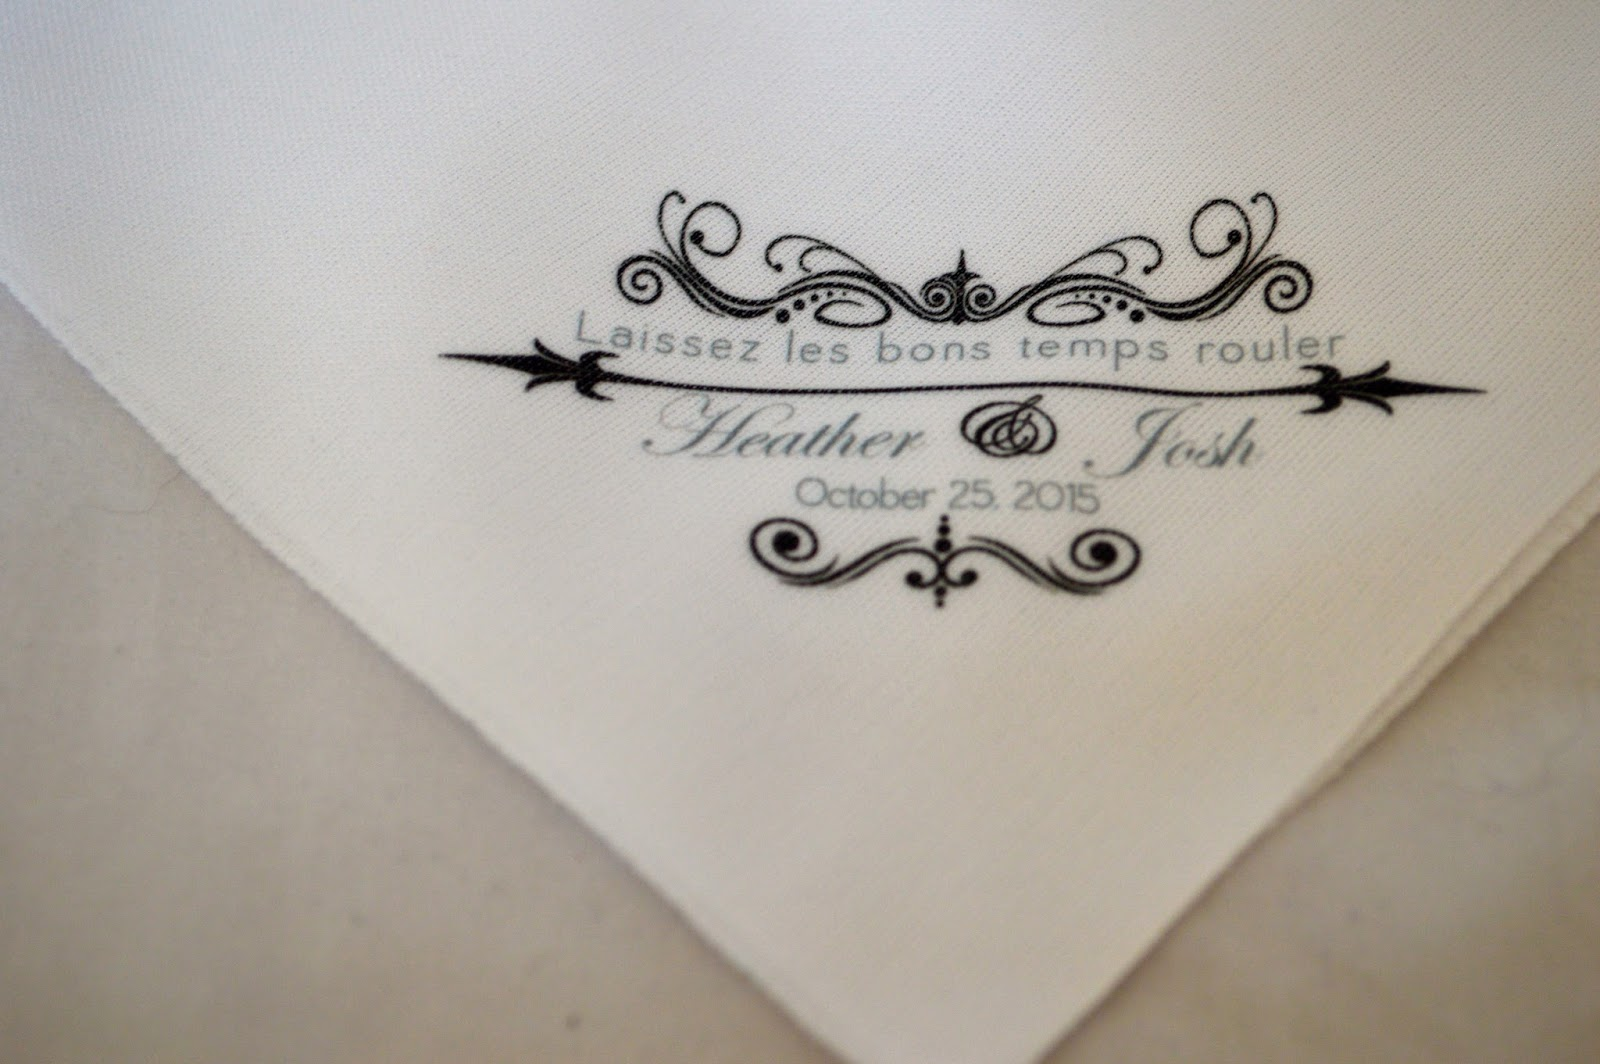 You Hip New Orleans Second Line Handkerchiefs Will Arrive Beautifully Folded Pressed And Creased Ready To Be Presented Your Guests